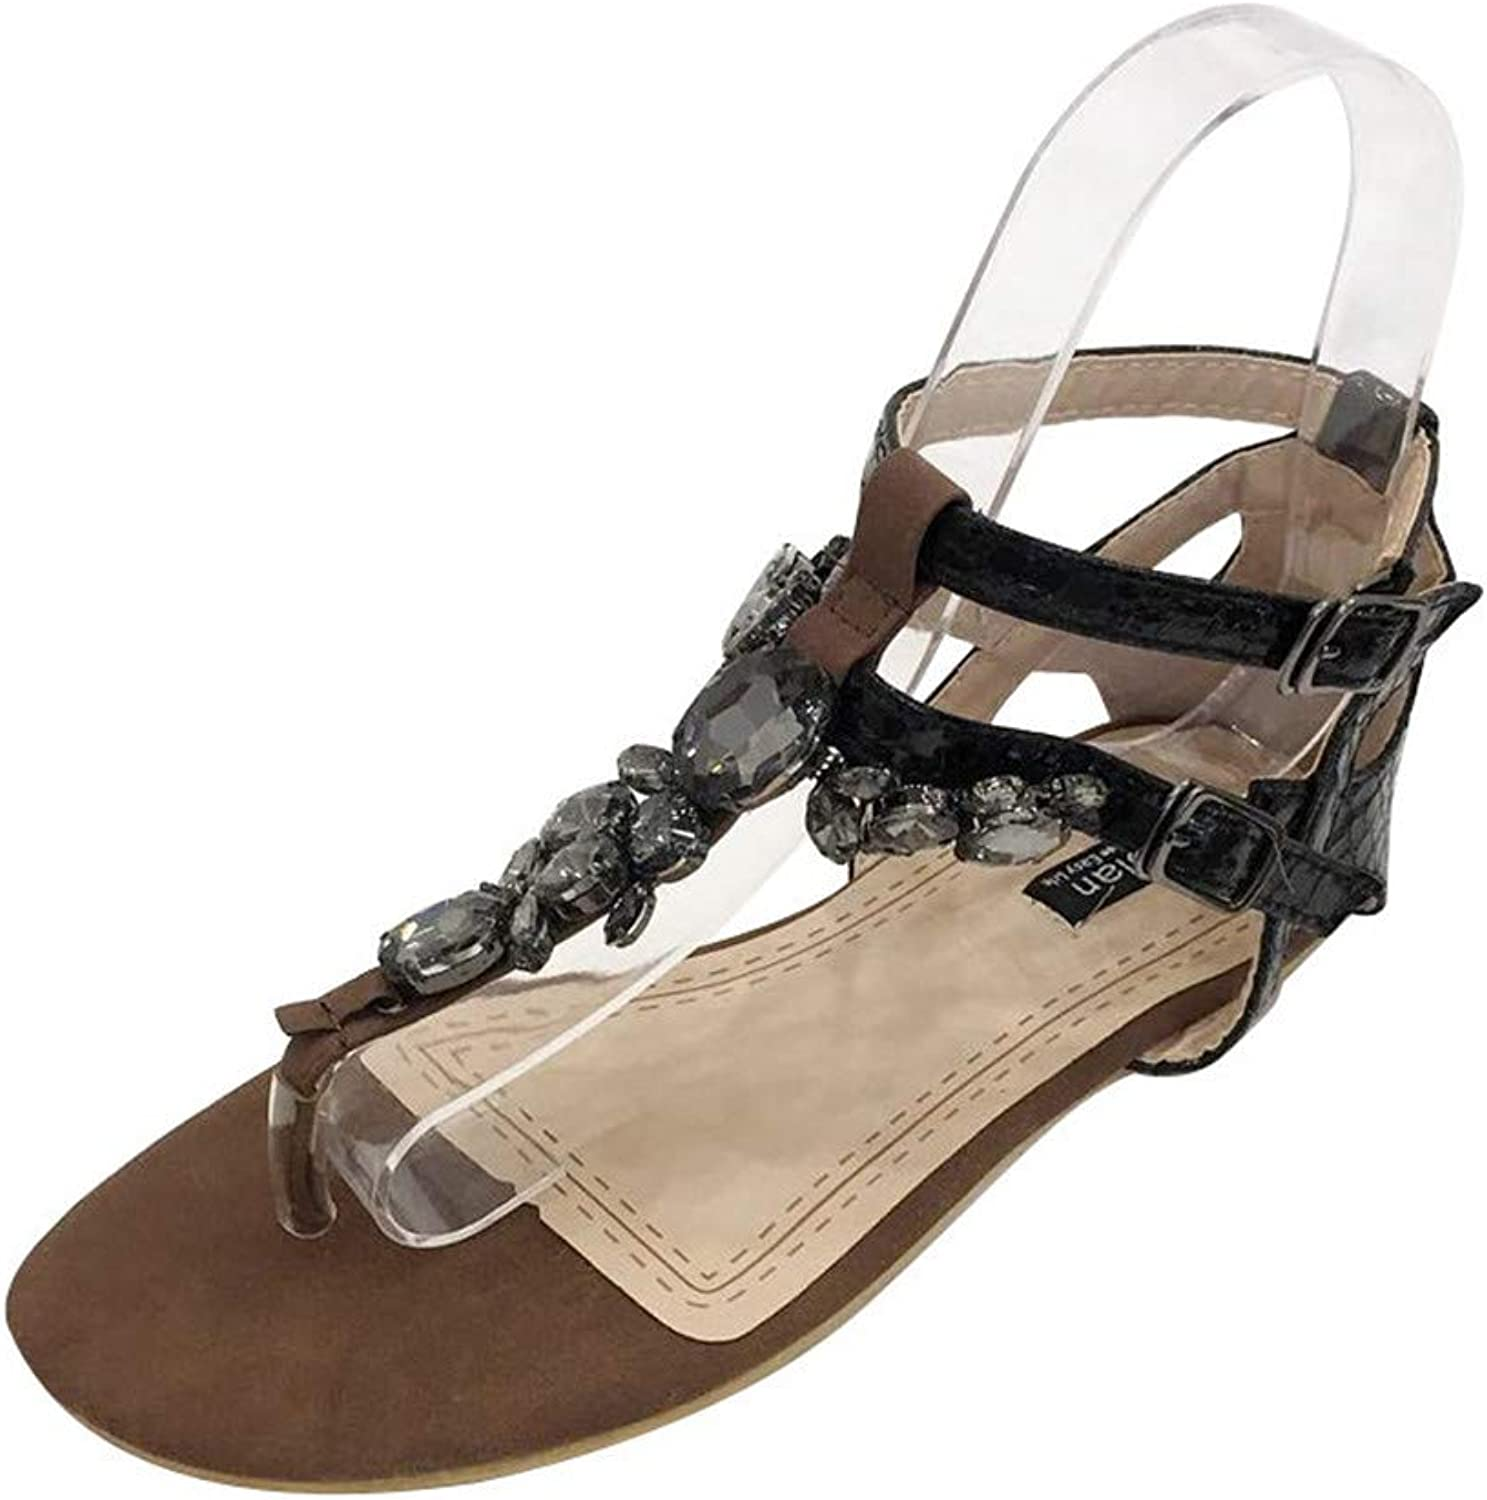 Meimeioo Womens Strappy Roman Gladiator Sandals Flats Thongs shoes Glitter Flat Sandals